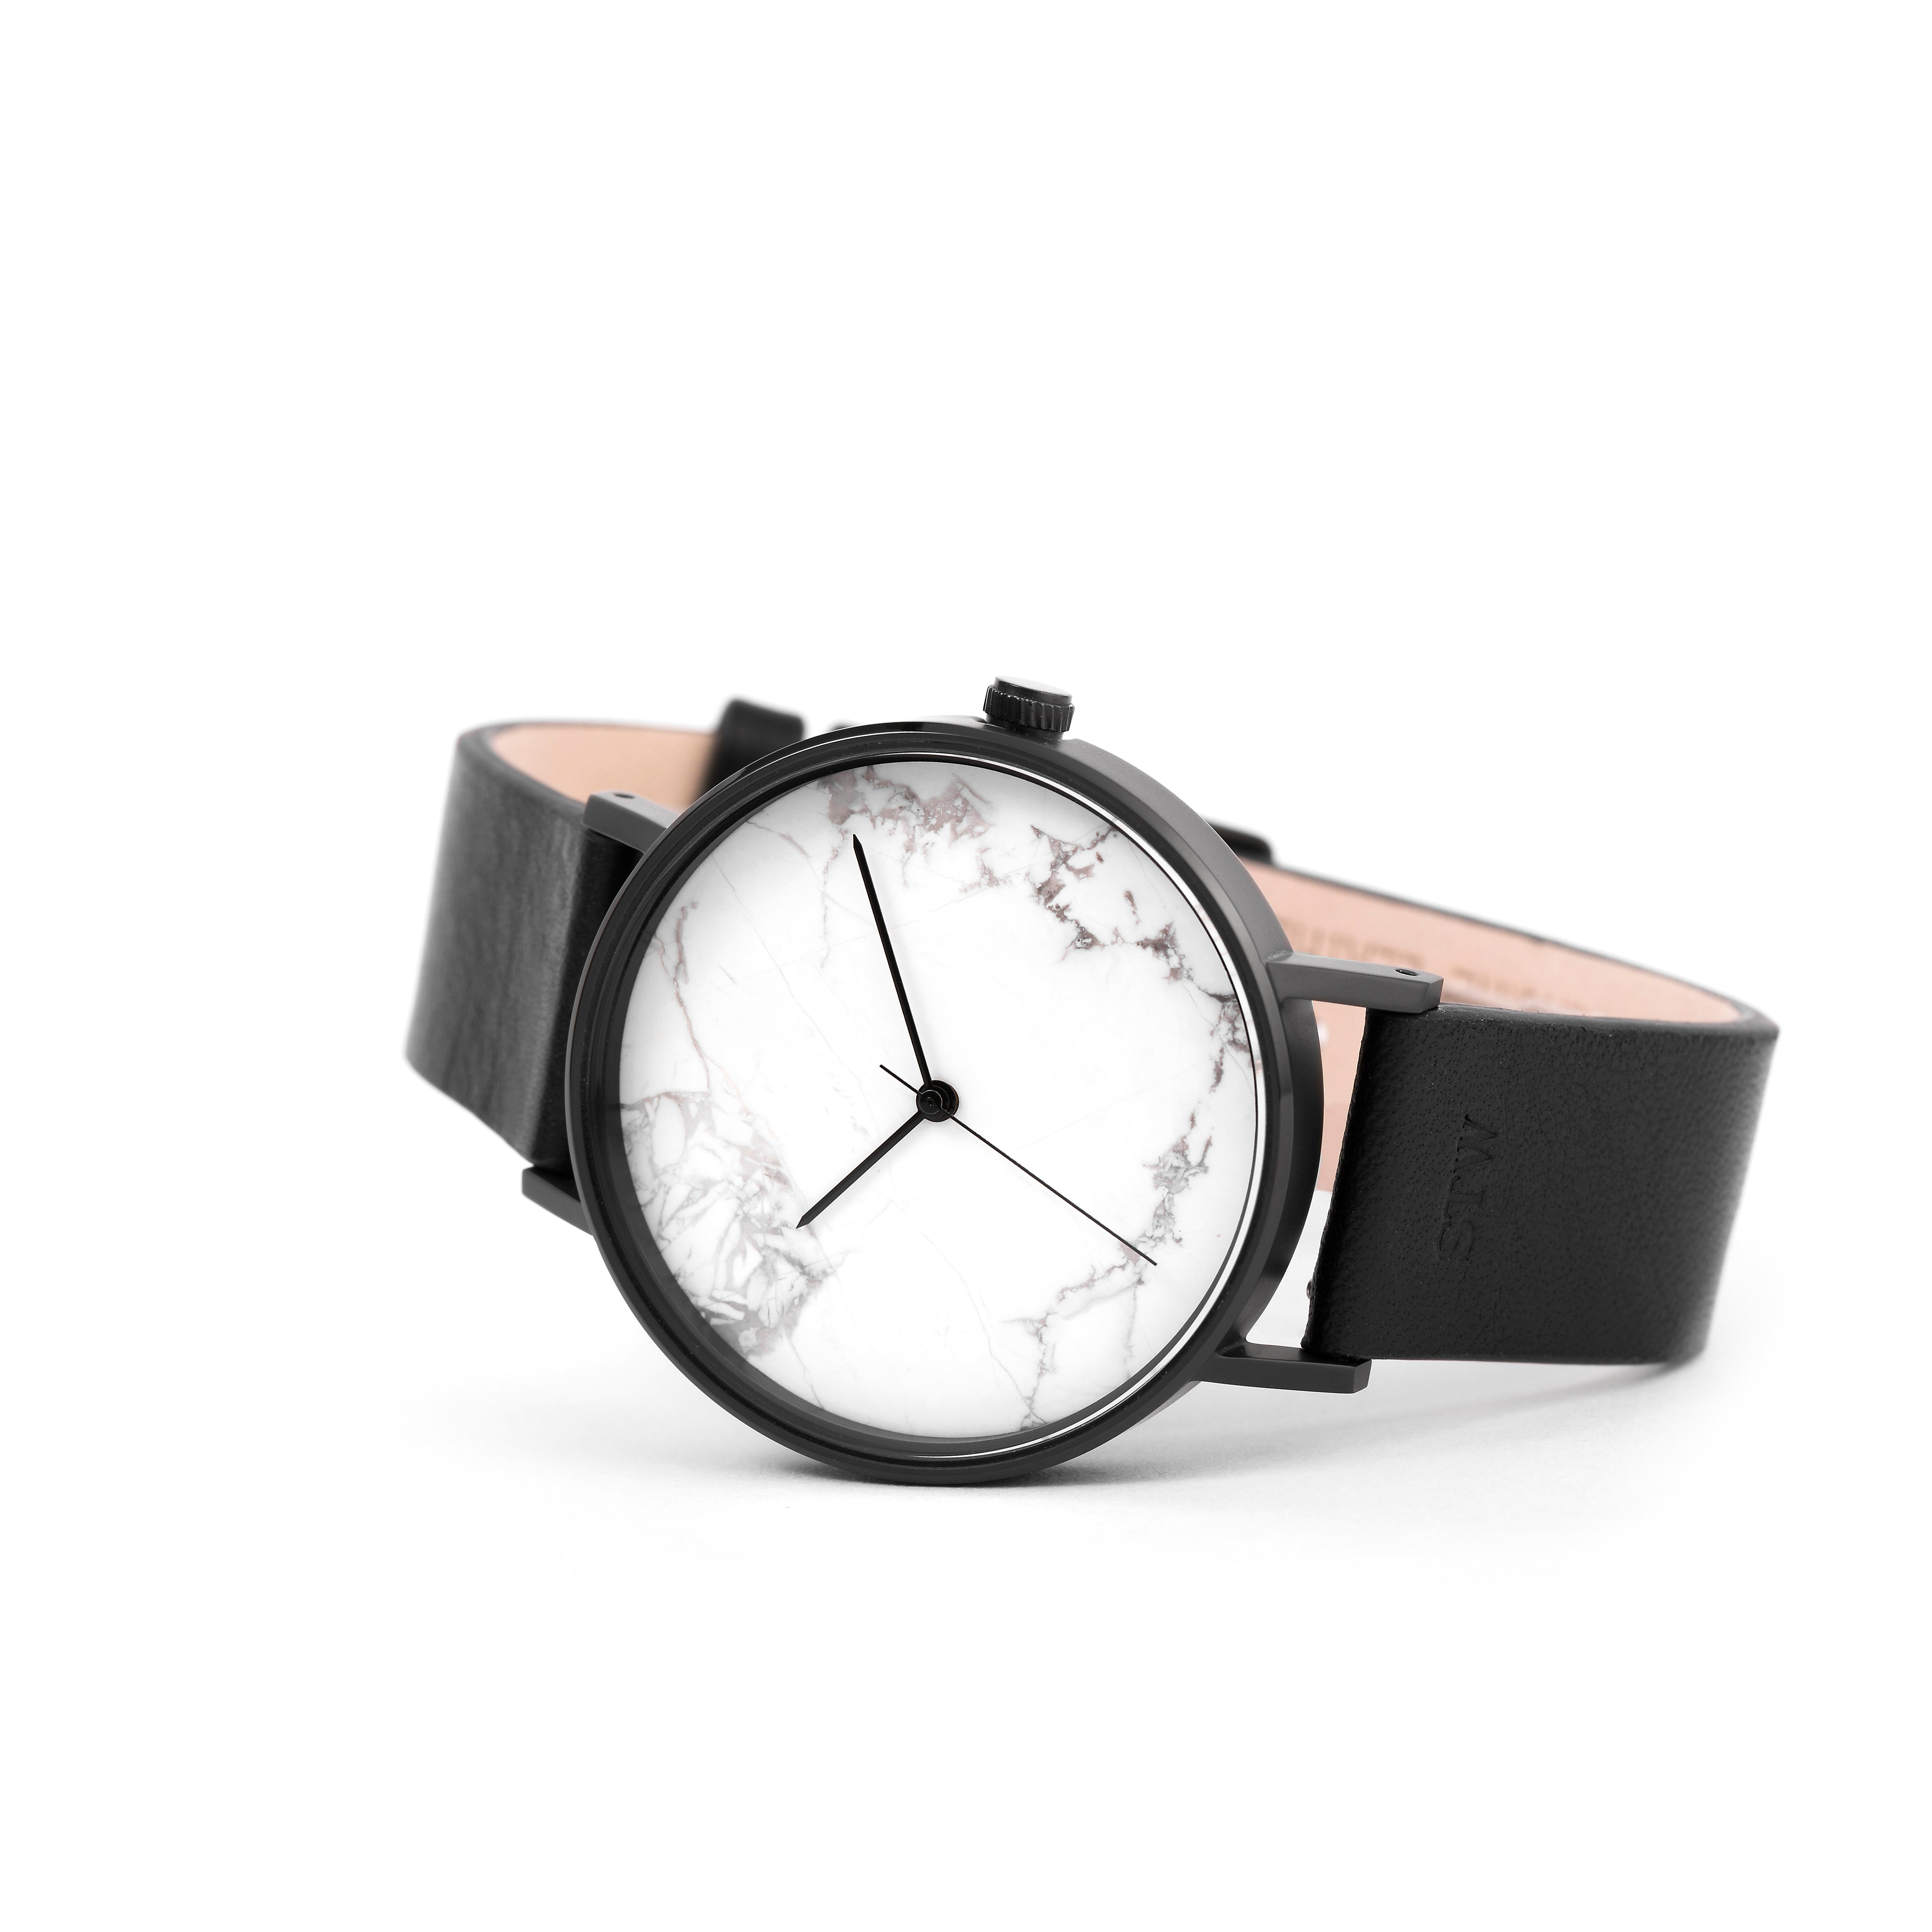 THE STONE -  WHITE MARBLE DIAL WITH BLACK LEATHER STRAP WATCH